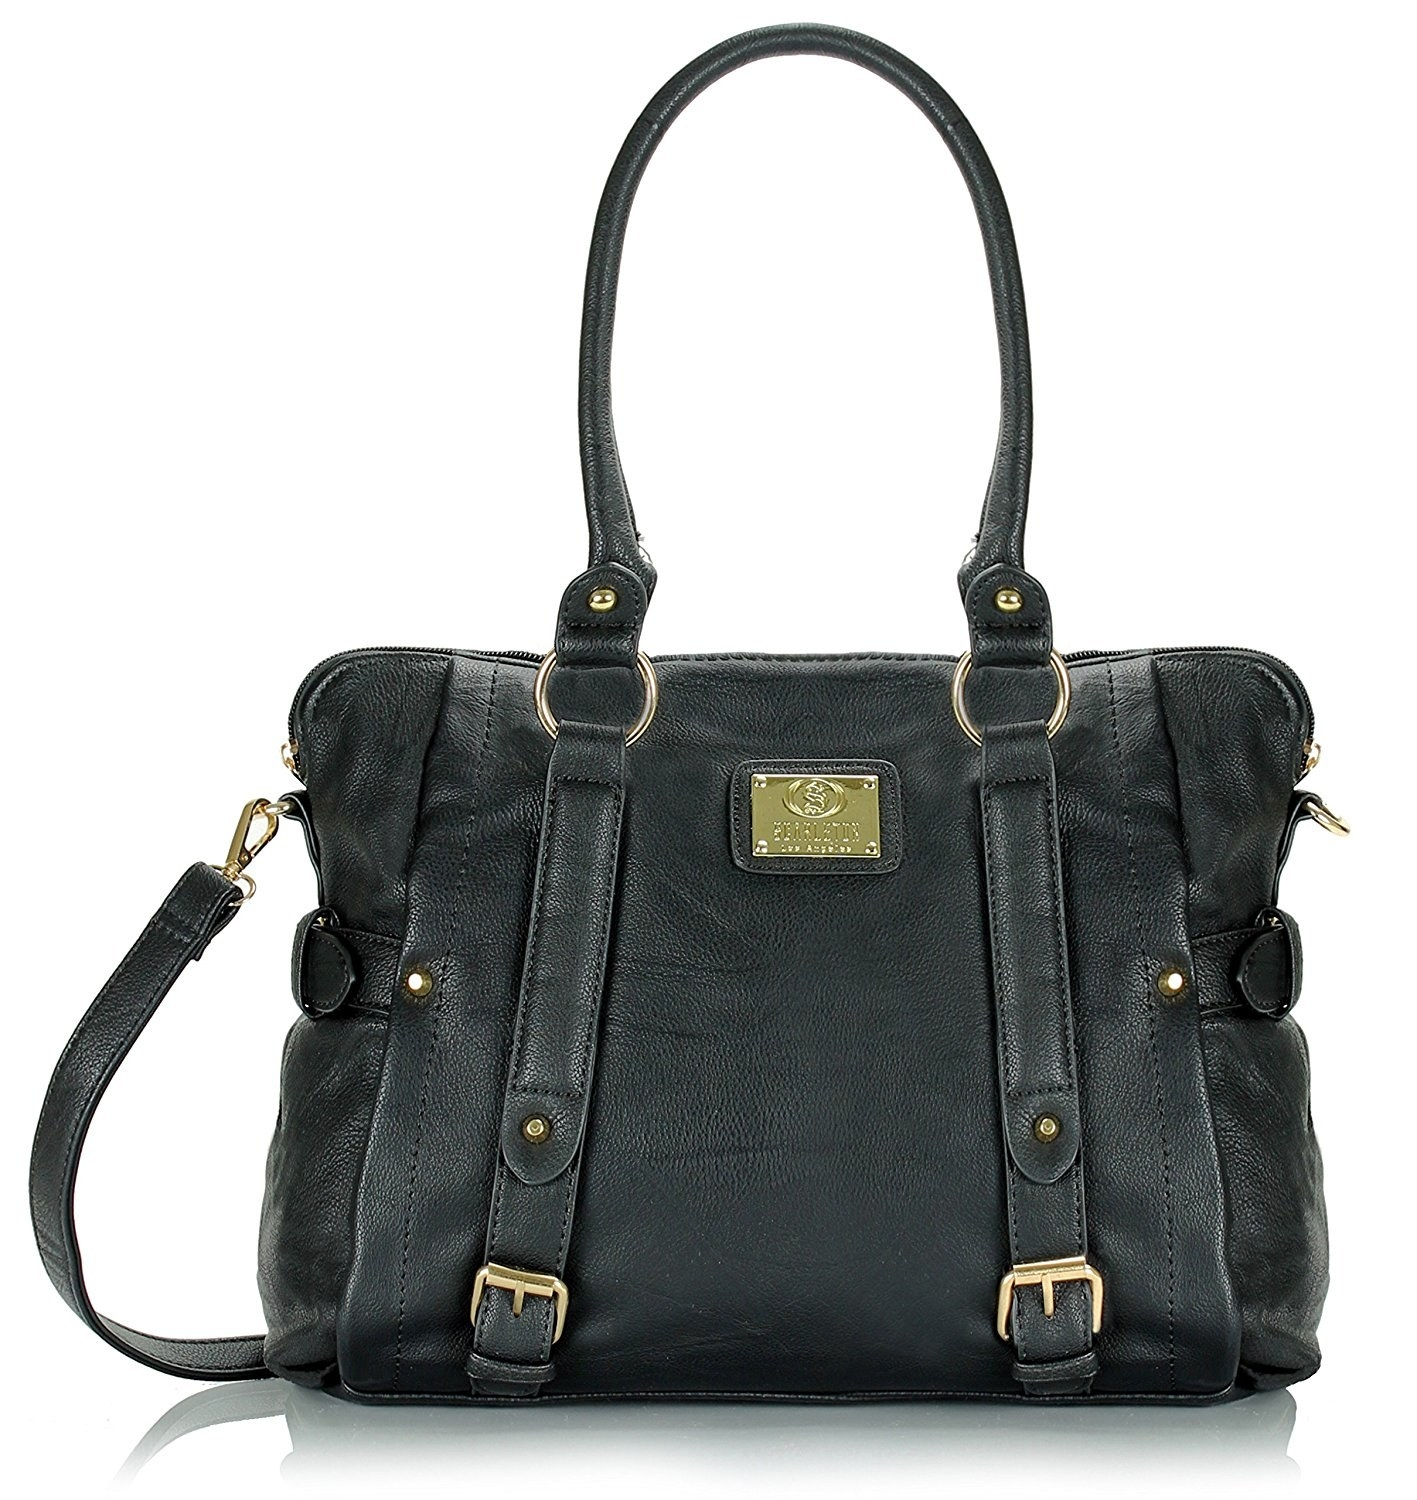 bd095e79a4 A spacious satchel with a removable crossbody strap and several little  pockets inside.